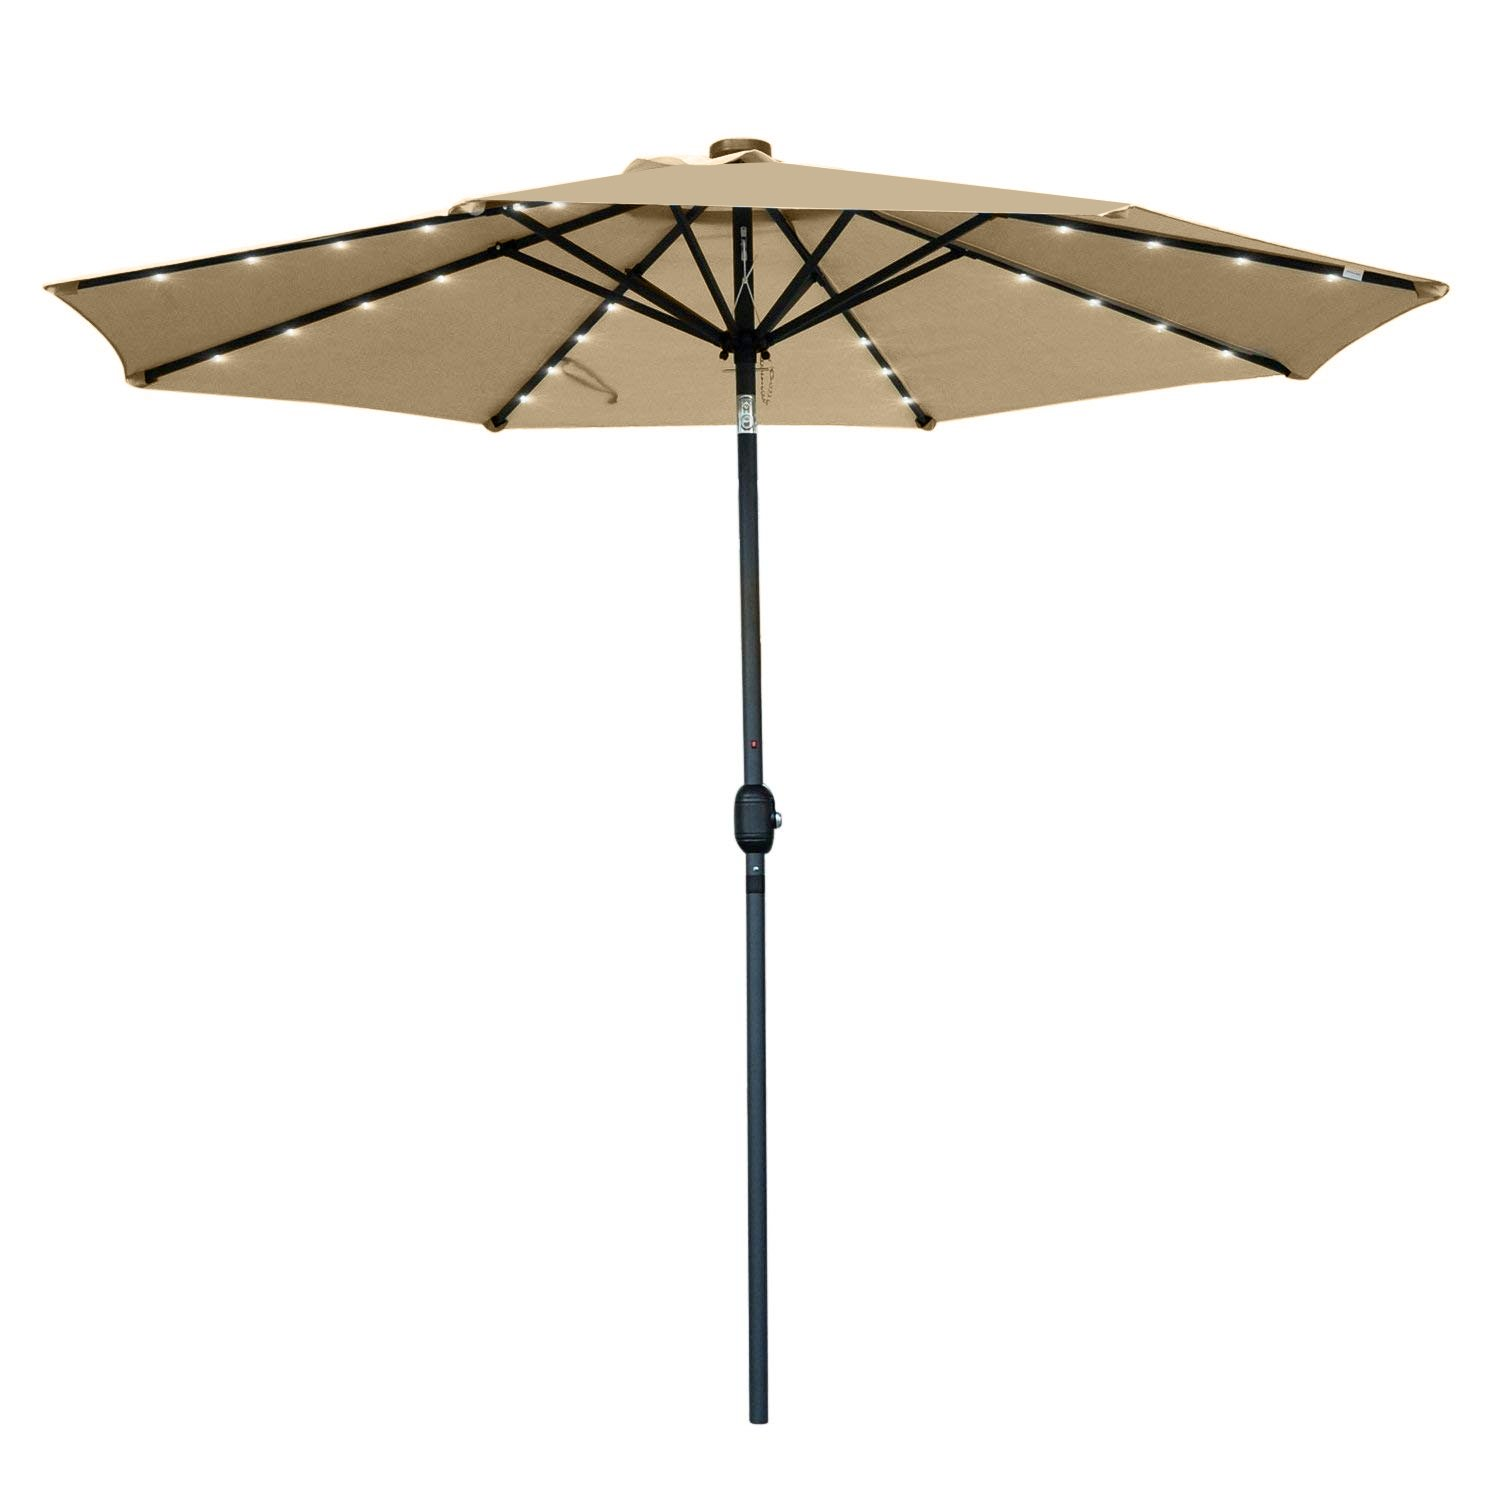 Snail 9' Solar Powered LED Patio Umbrella with 32 Lights, Fade Resistant Garden Aluminum Table Umbrella with Push Button Tilt, Beige